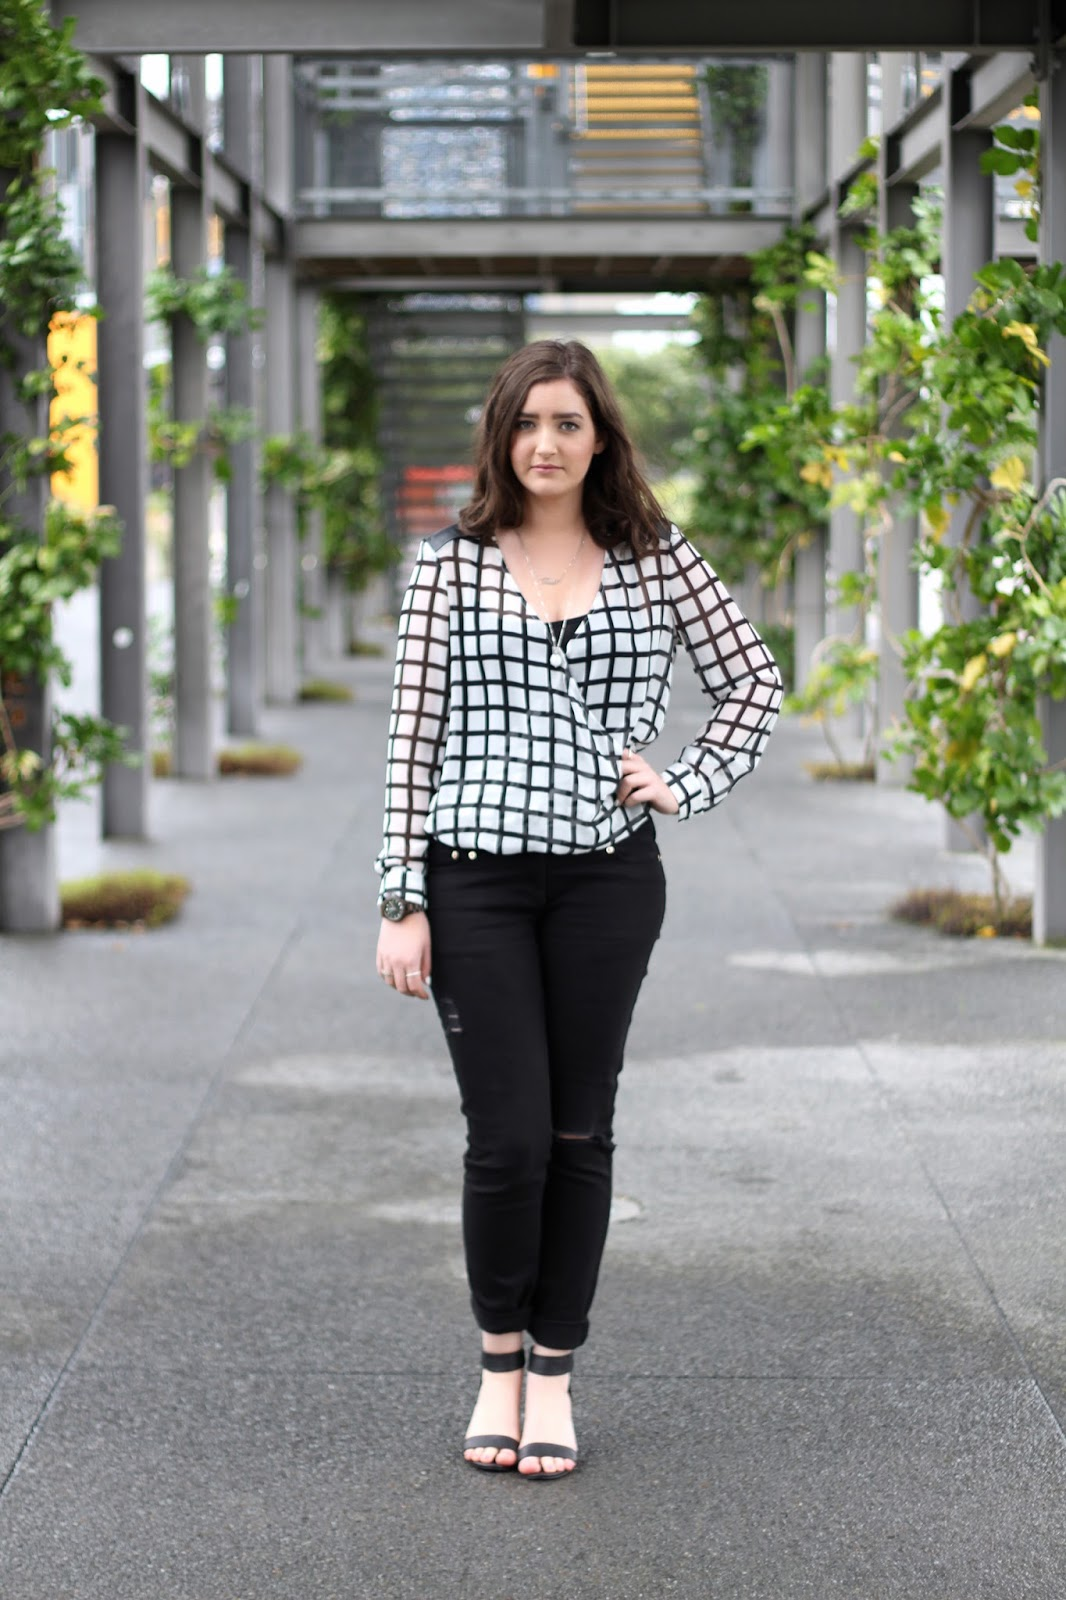 What is smart casual dress code for dinner women - Tuesday June 23 2015